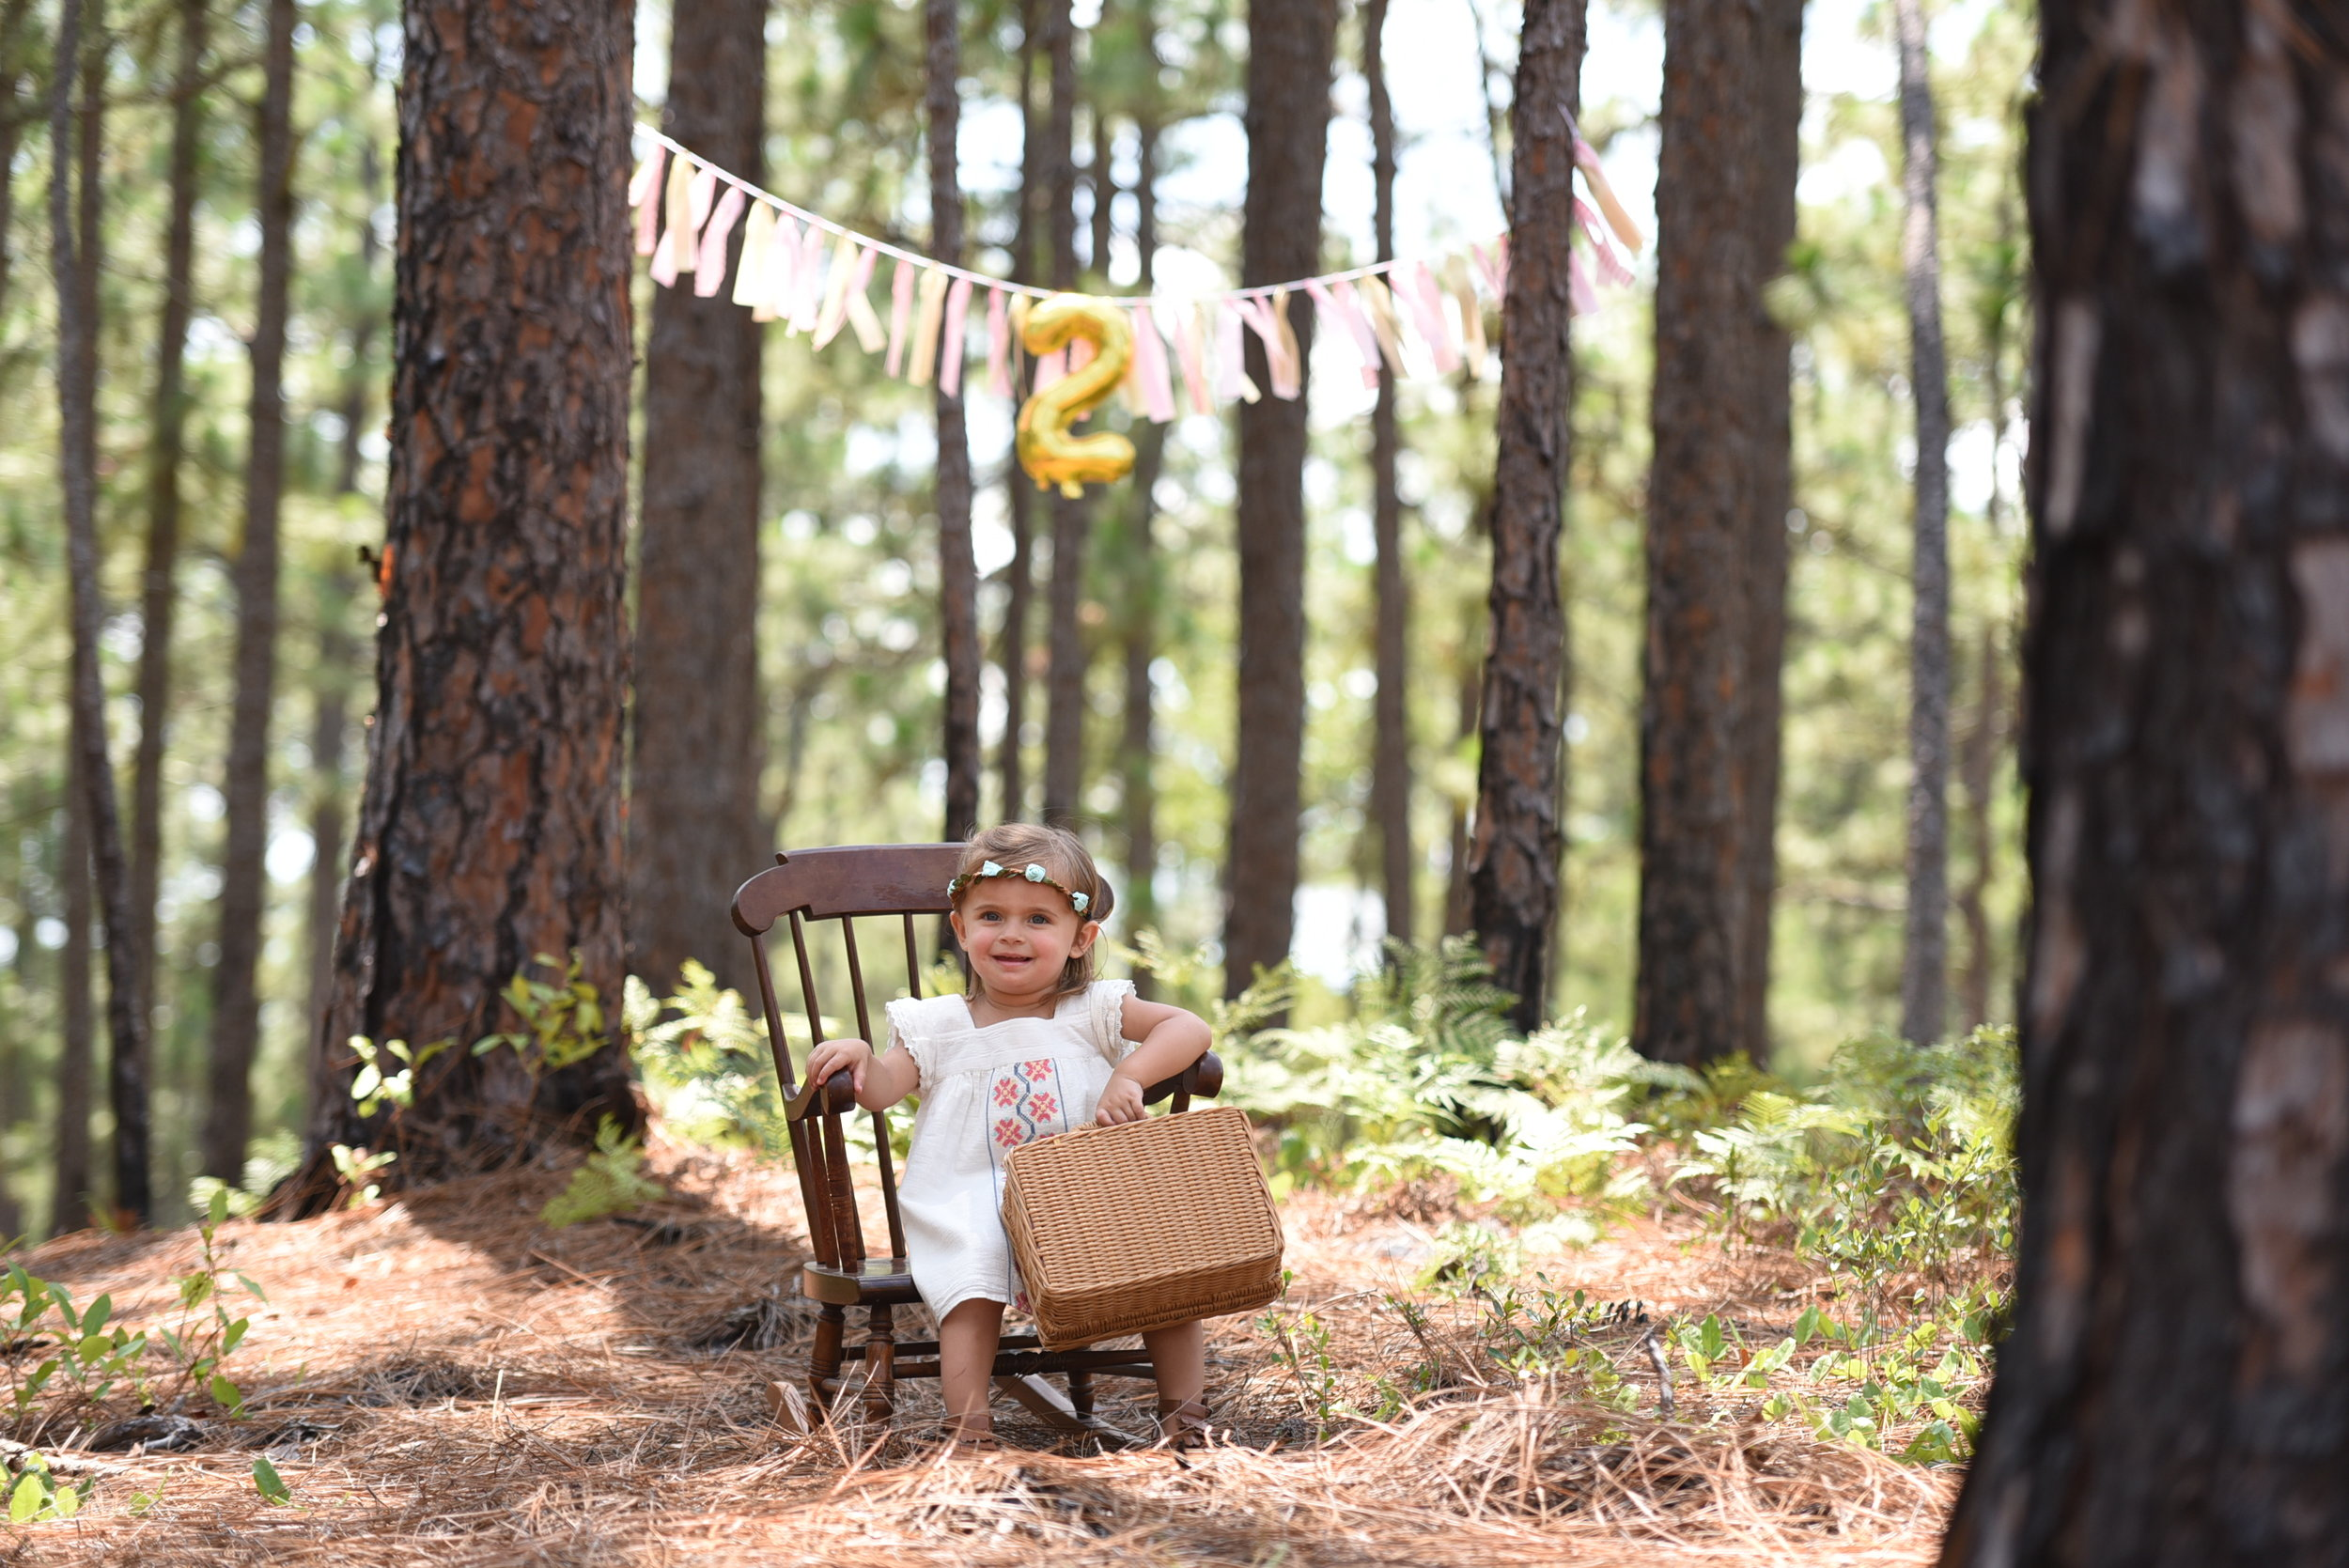 Personal - Birthdays, natural afternoon in the park, special moments, etcYou pick your location. Travel fee may apply.1 hour 30 minutes$100.00 -  $200.00